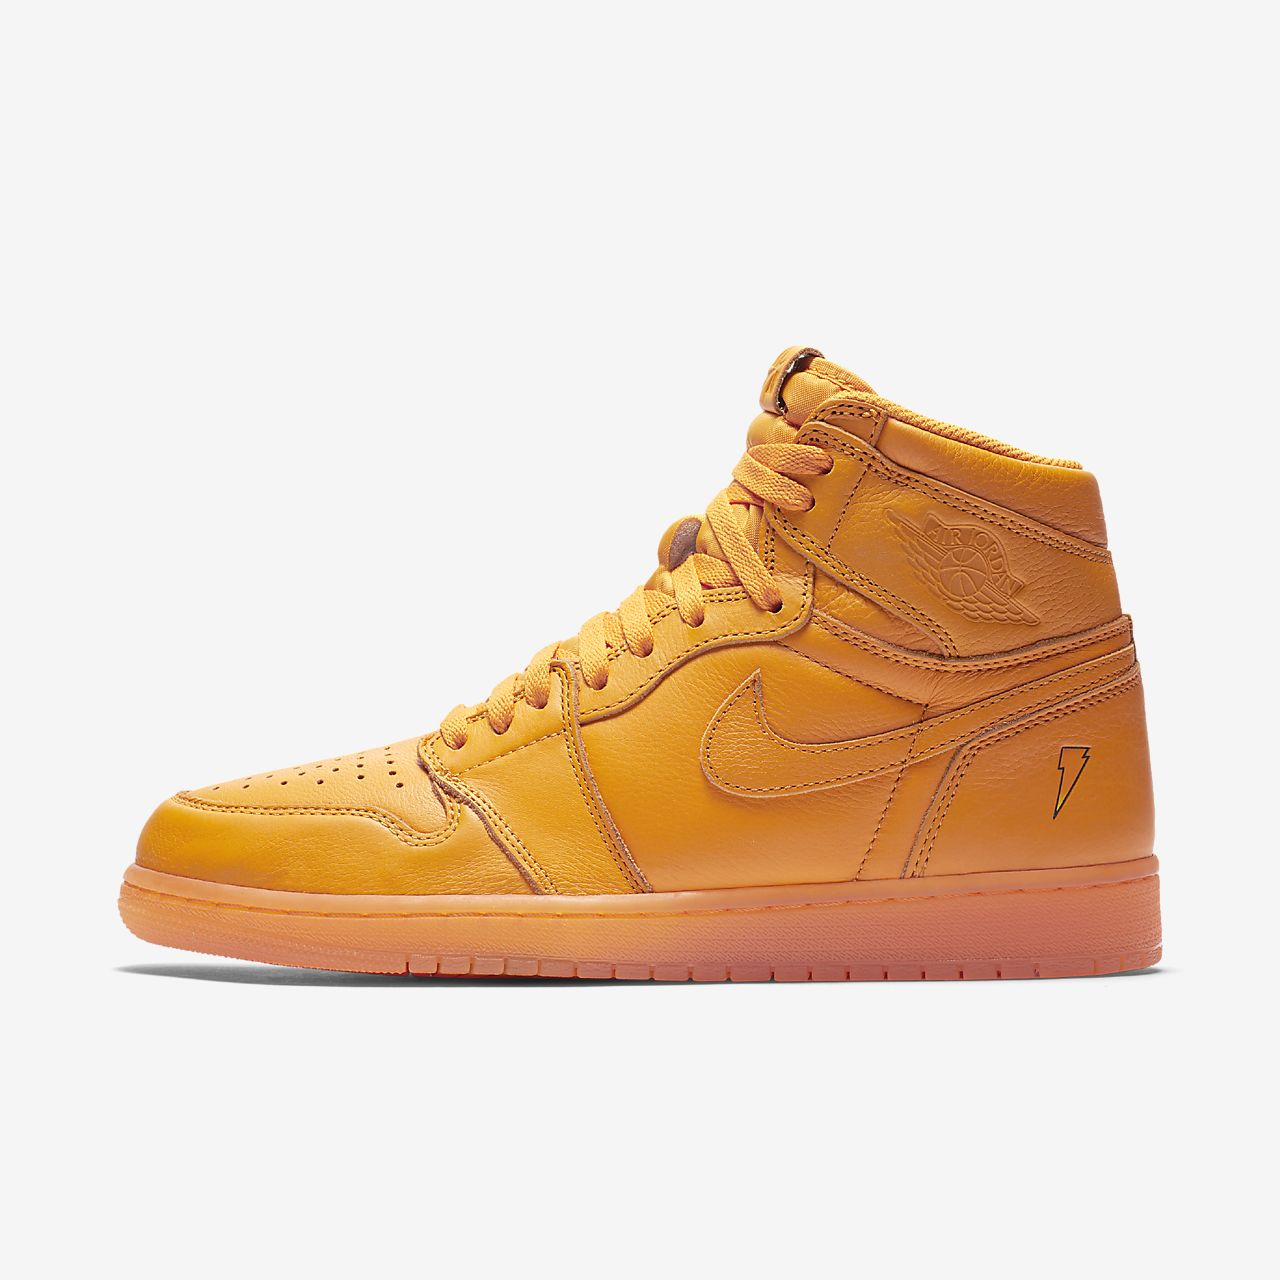 hot sale online 37c72 455de Air Jordan 1 Retro High OG  Orange